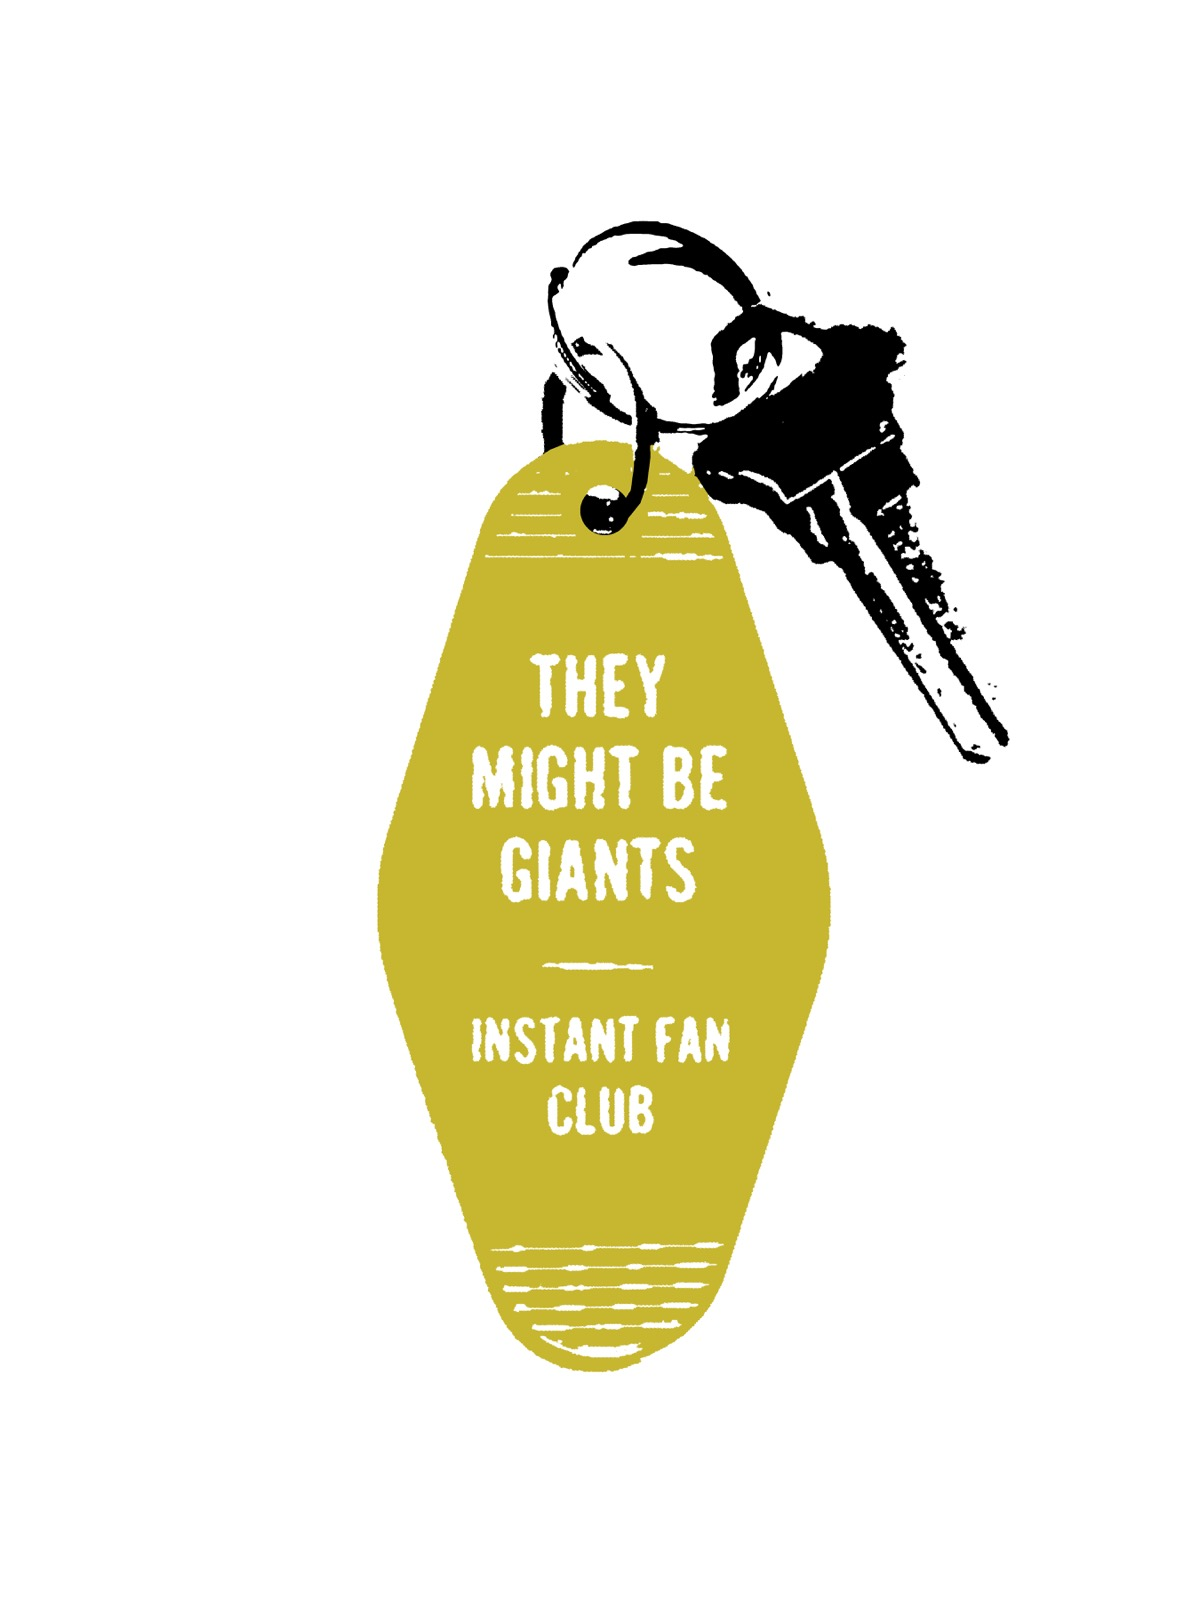 They Might Be Giants Instant Fan Club logo